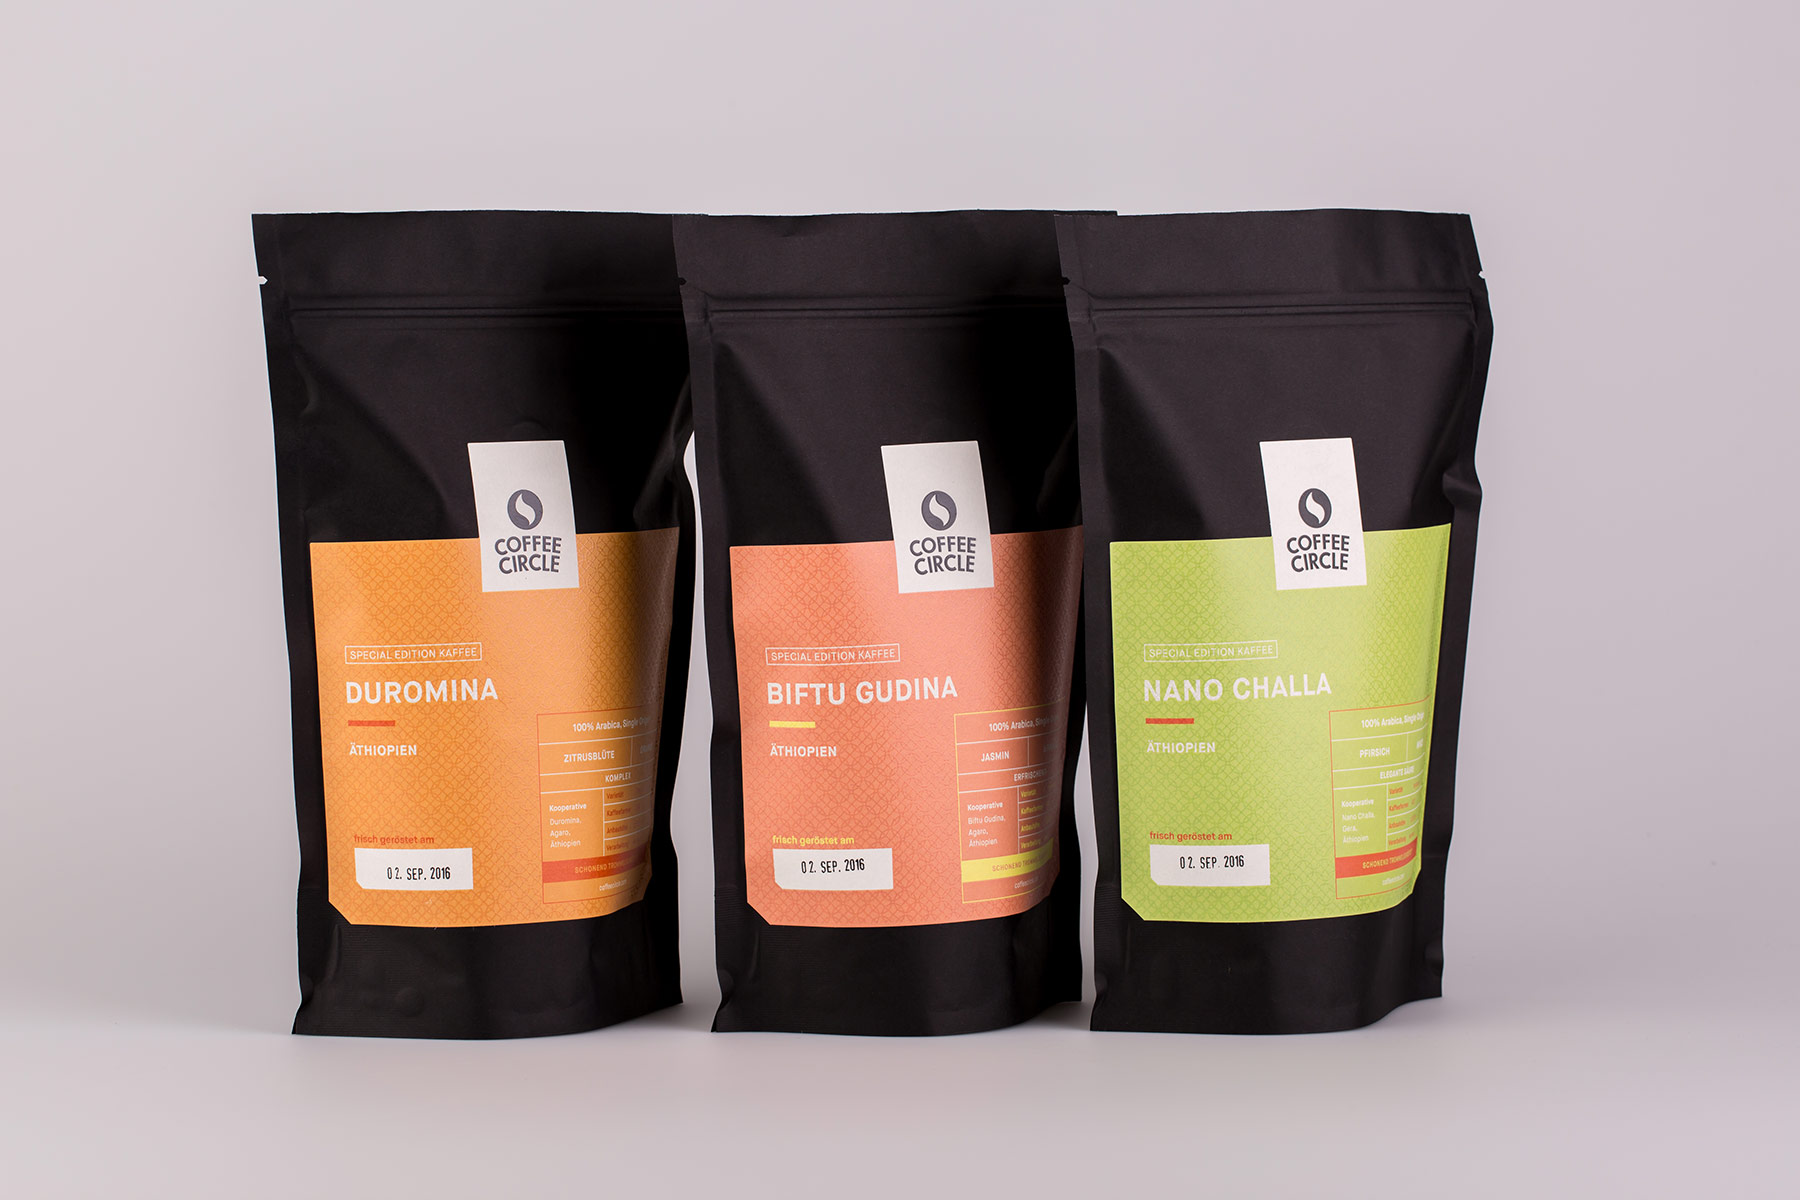 max-duchardt-m-a-a-x-coffeecircle-packaging-design-special-gruppe